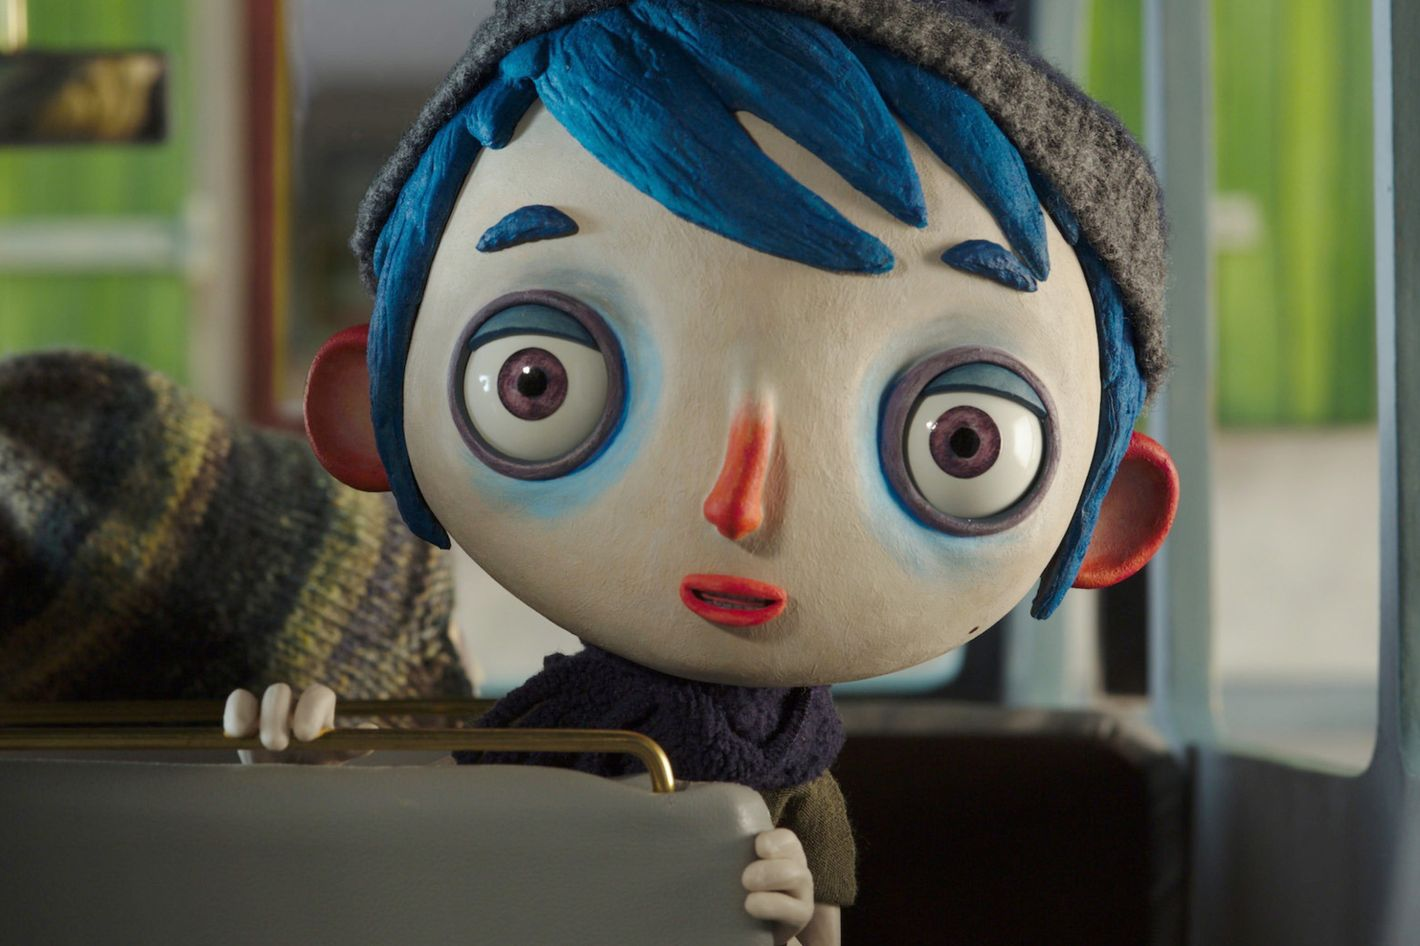 My Life As A Zucchini Movie Review Intimate And Sensitive